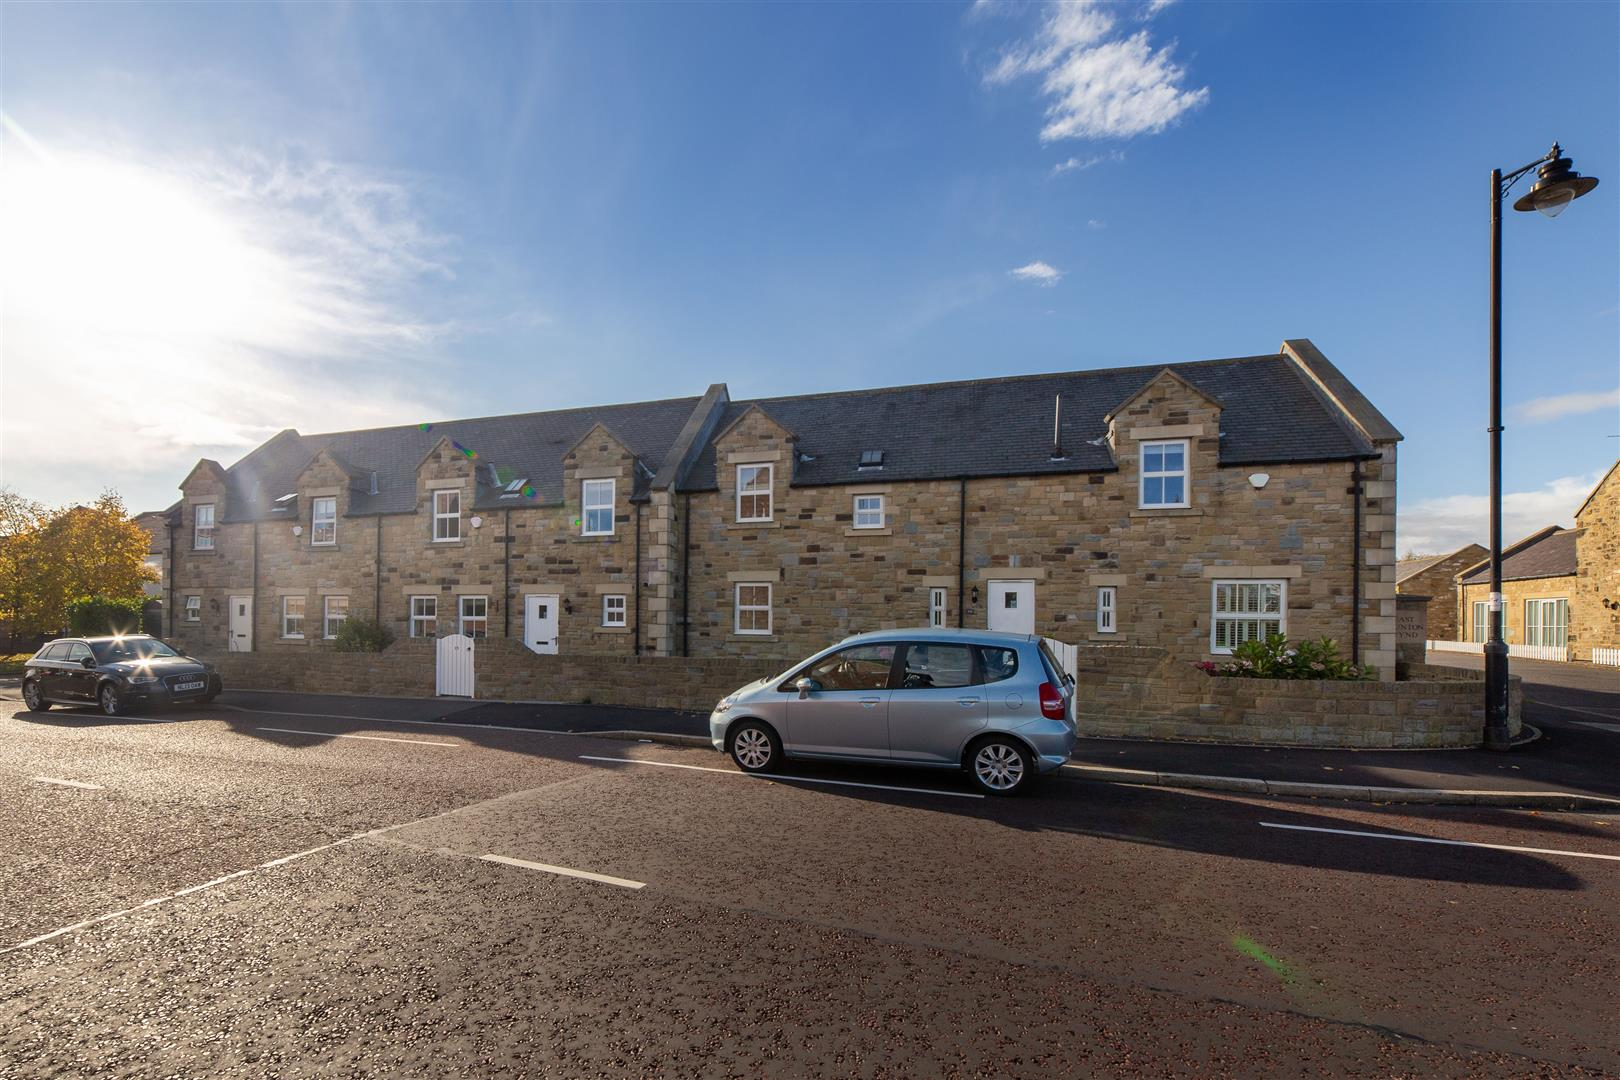 4 bed terraced house for sale in Newcastle Upon Tyne, NE13 7BR - Property Image 1